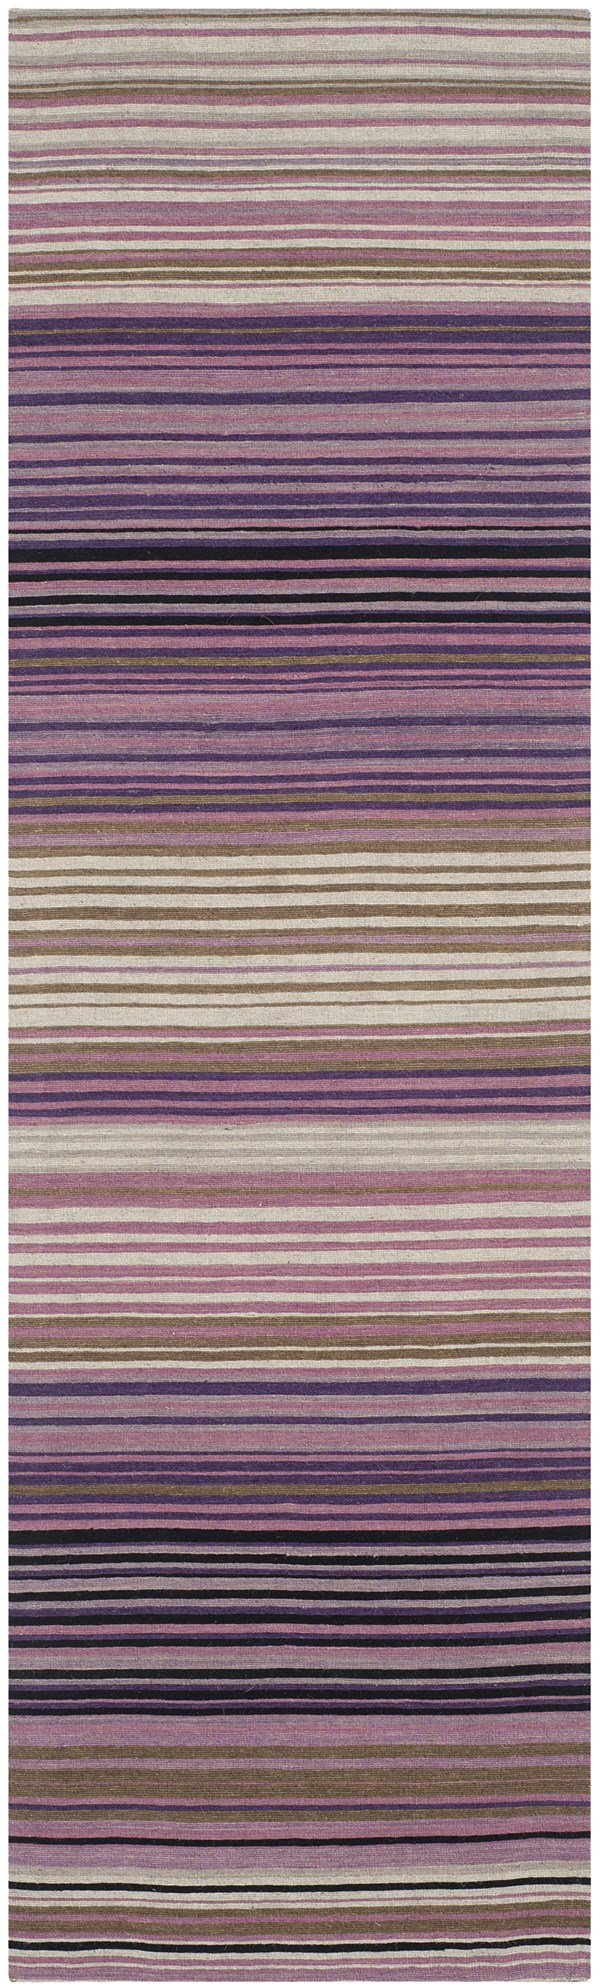 White, Lilac (A) Striped Area Rug